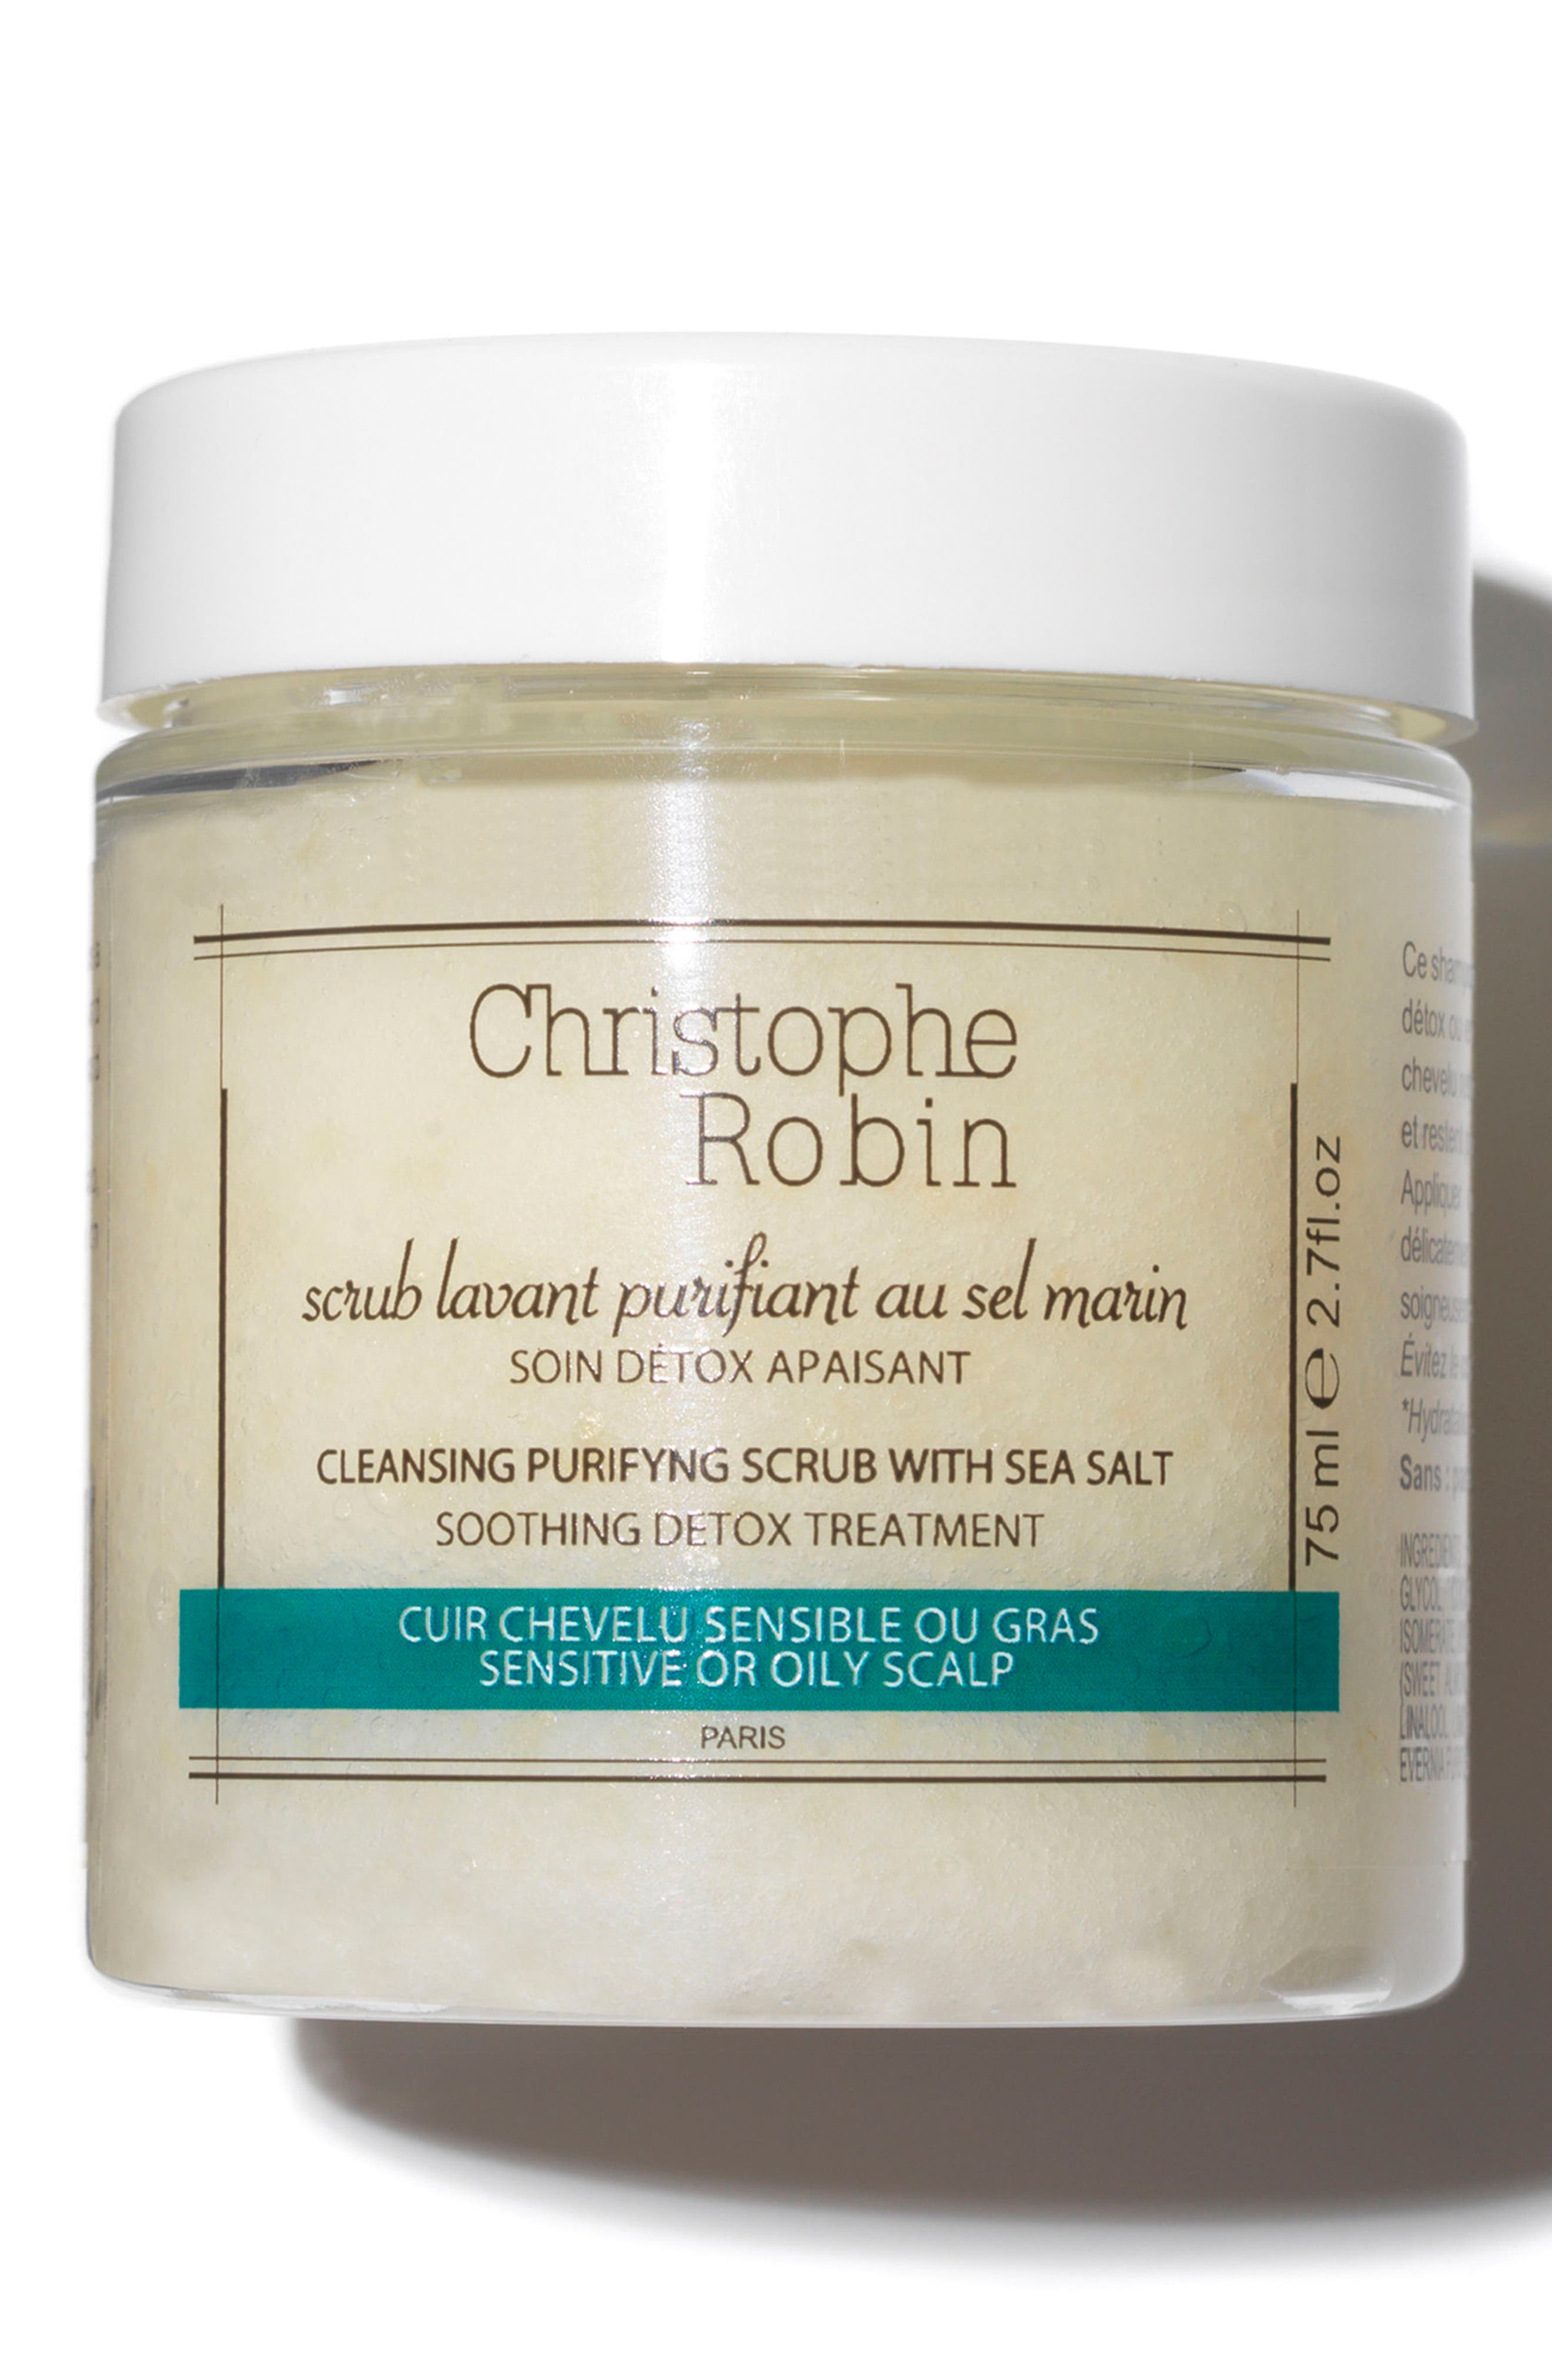 Cleansing Purifying Scrub With Sea Salt